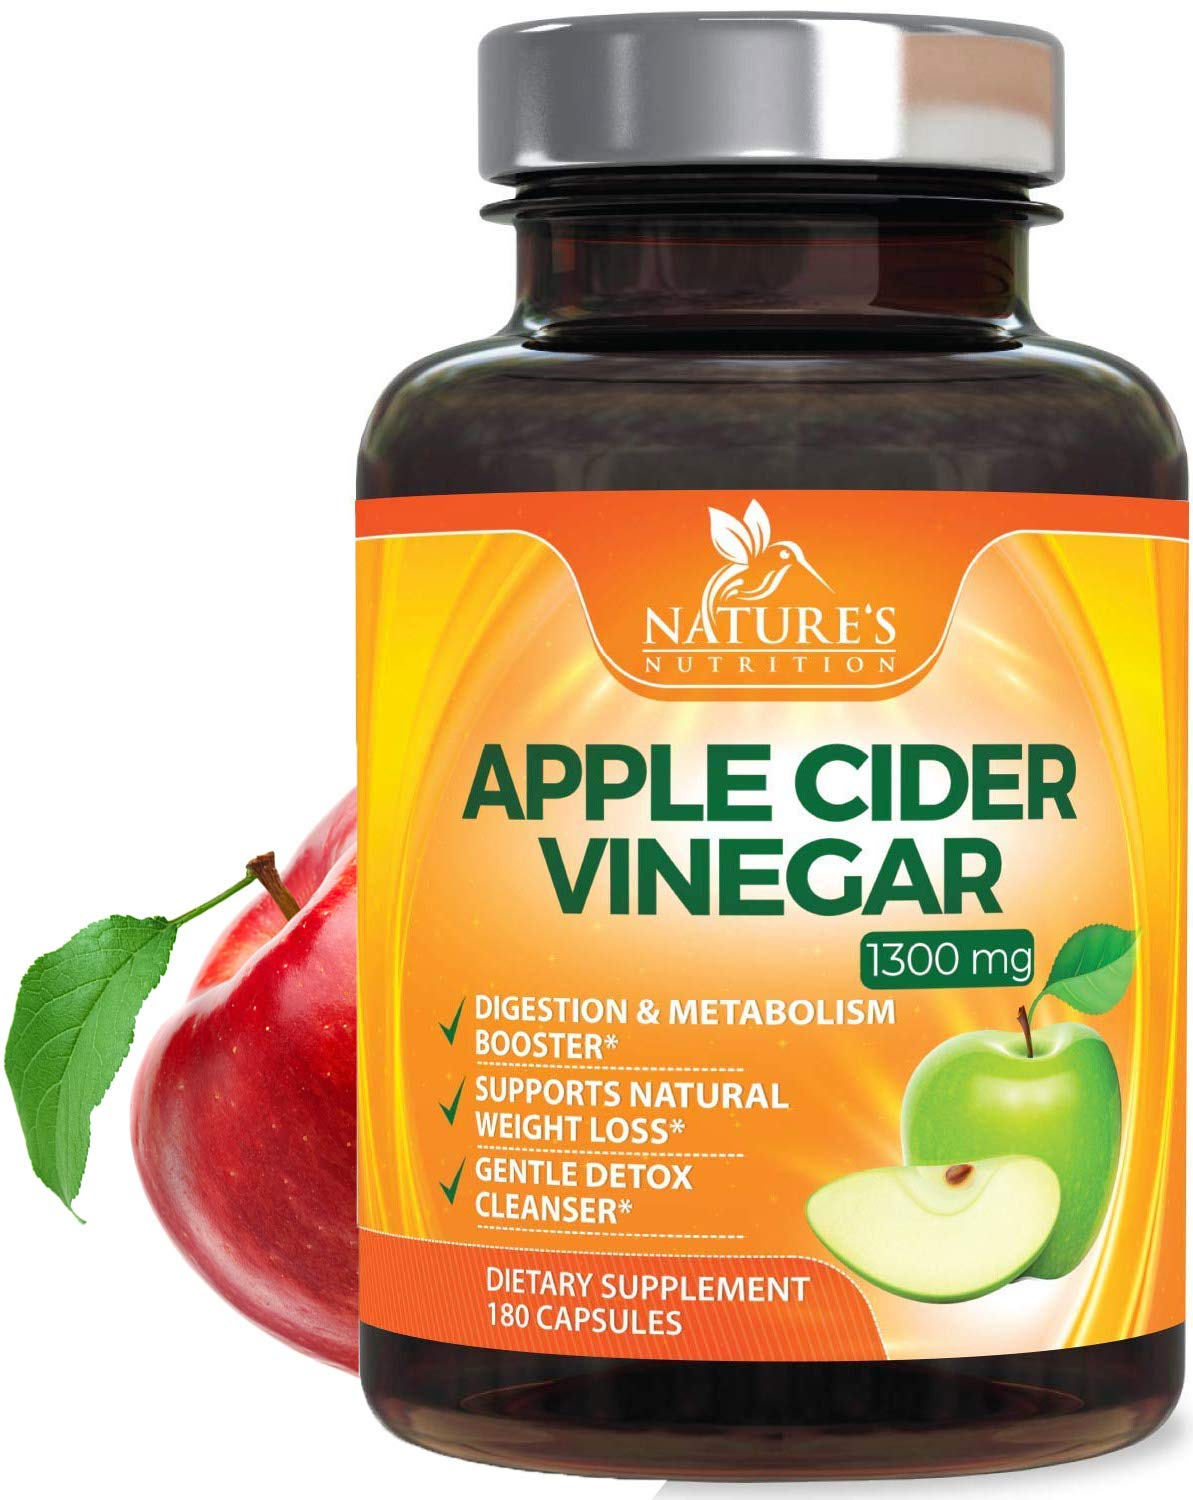 100% Natural Raw Apple Cider Vinegar Pills - Highest Potency 1300mg - Weight Loss Appetite Suppressant, Made in USA, Best Vegan ACV, Metabolism Fat Burner & Detox Cleanse Supplement - 180 Capsules by Nature's Nutrition